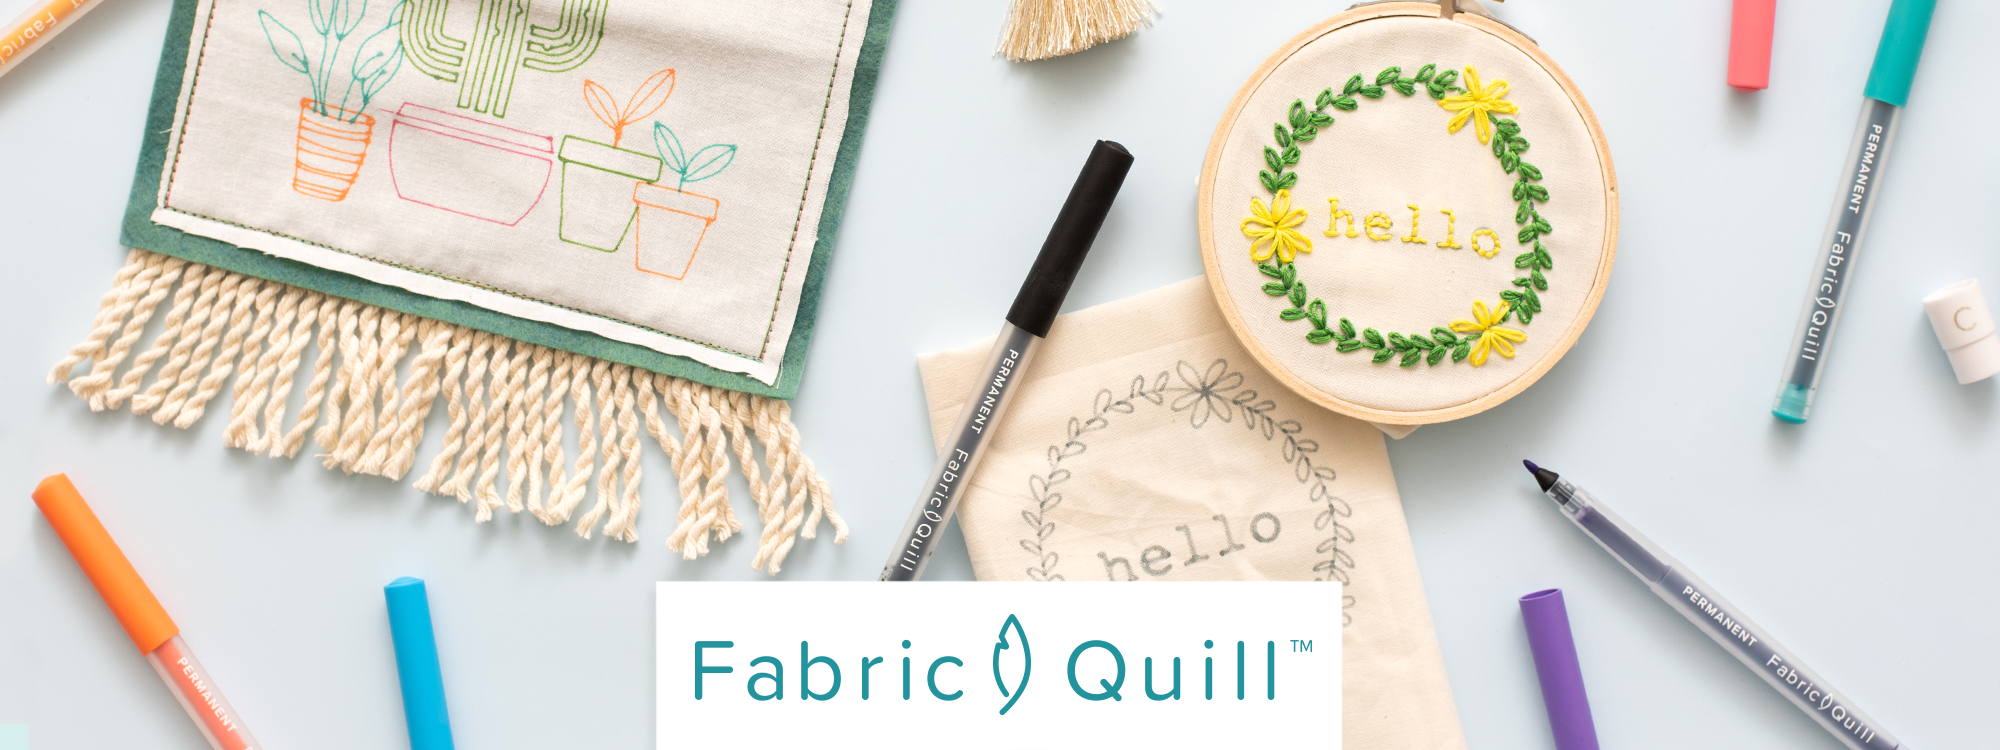 WR_Quill_Fabric_WebsiteHeader